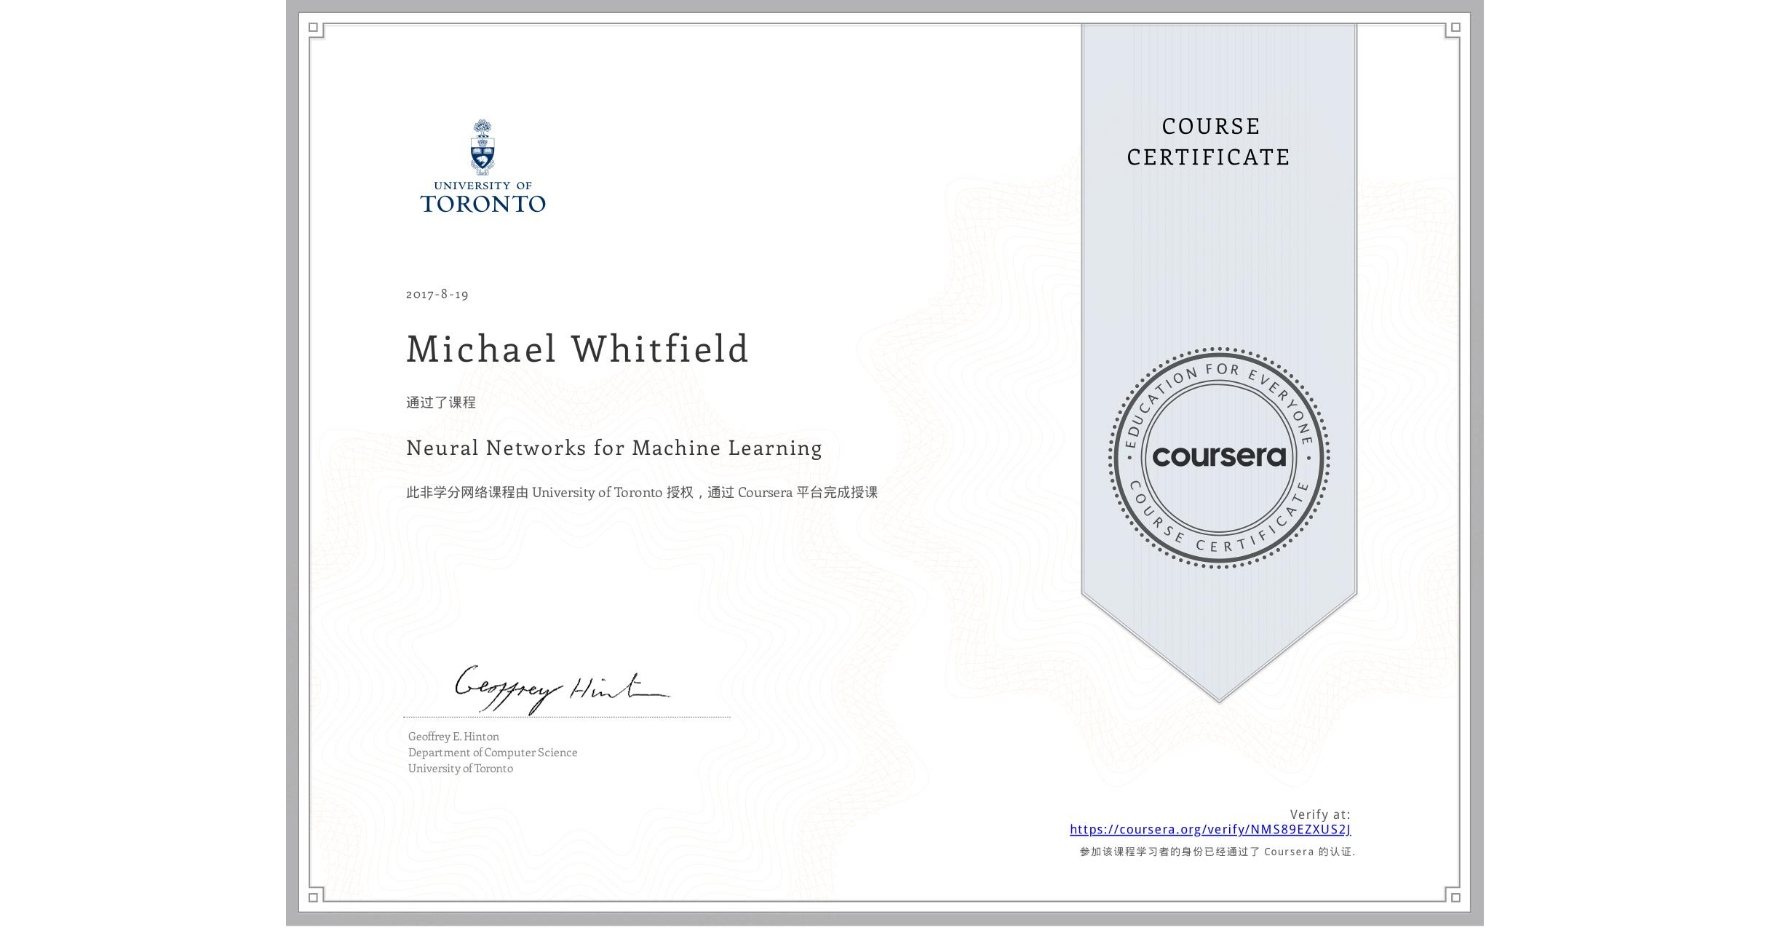 View certificate for Michael Whitfield, Neural Networks for Machine Learning, an online non-credit course authorized by University of Toronto and offered through Coursera